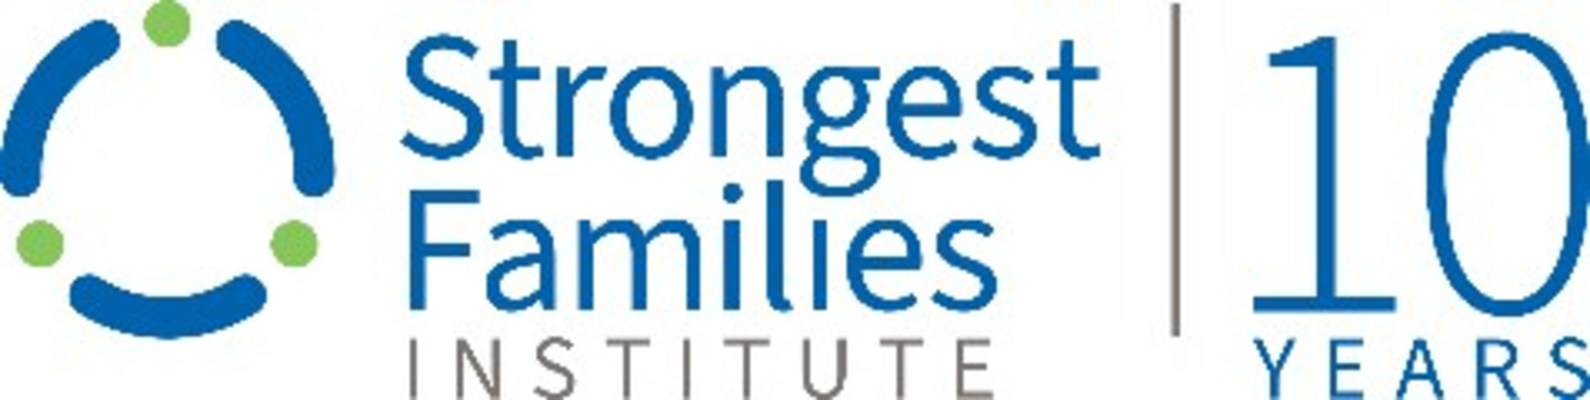 SFI LOGO (CNW Group/Strongest Families Institute)